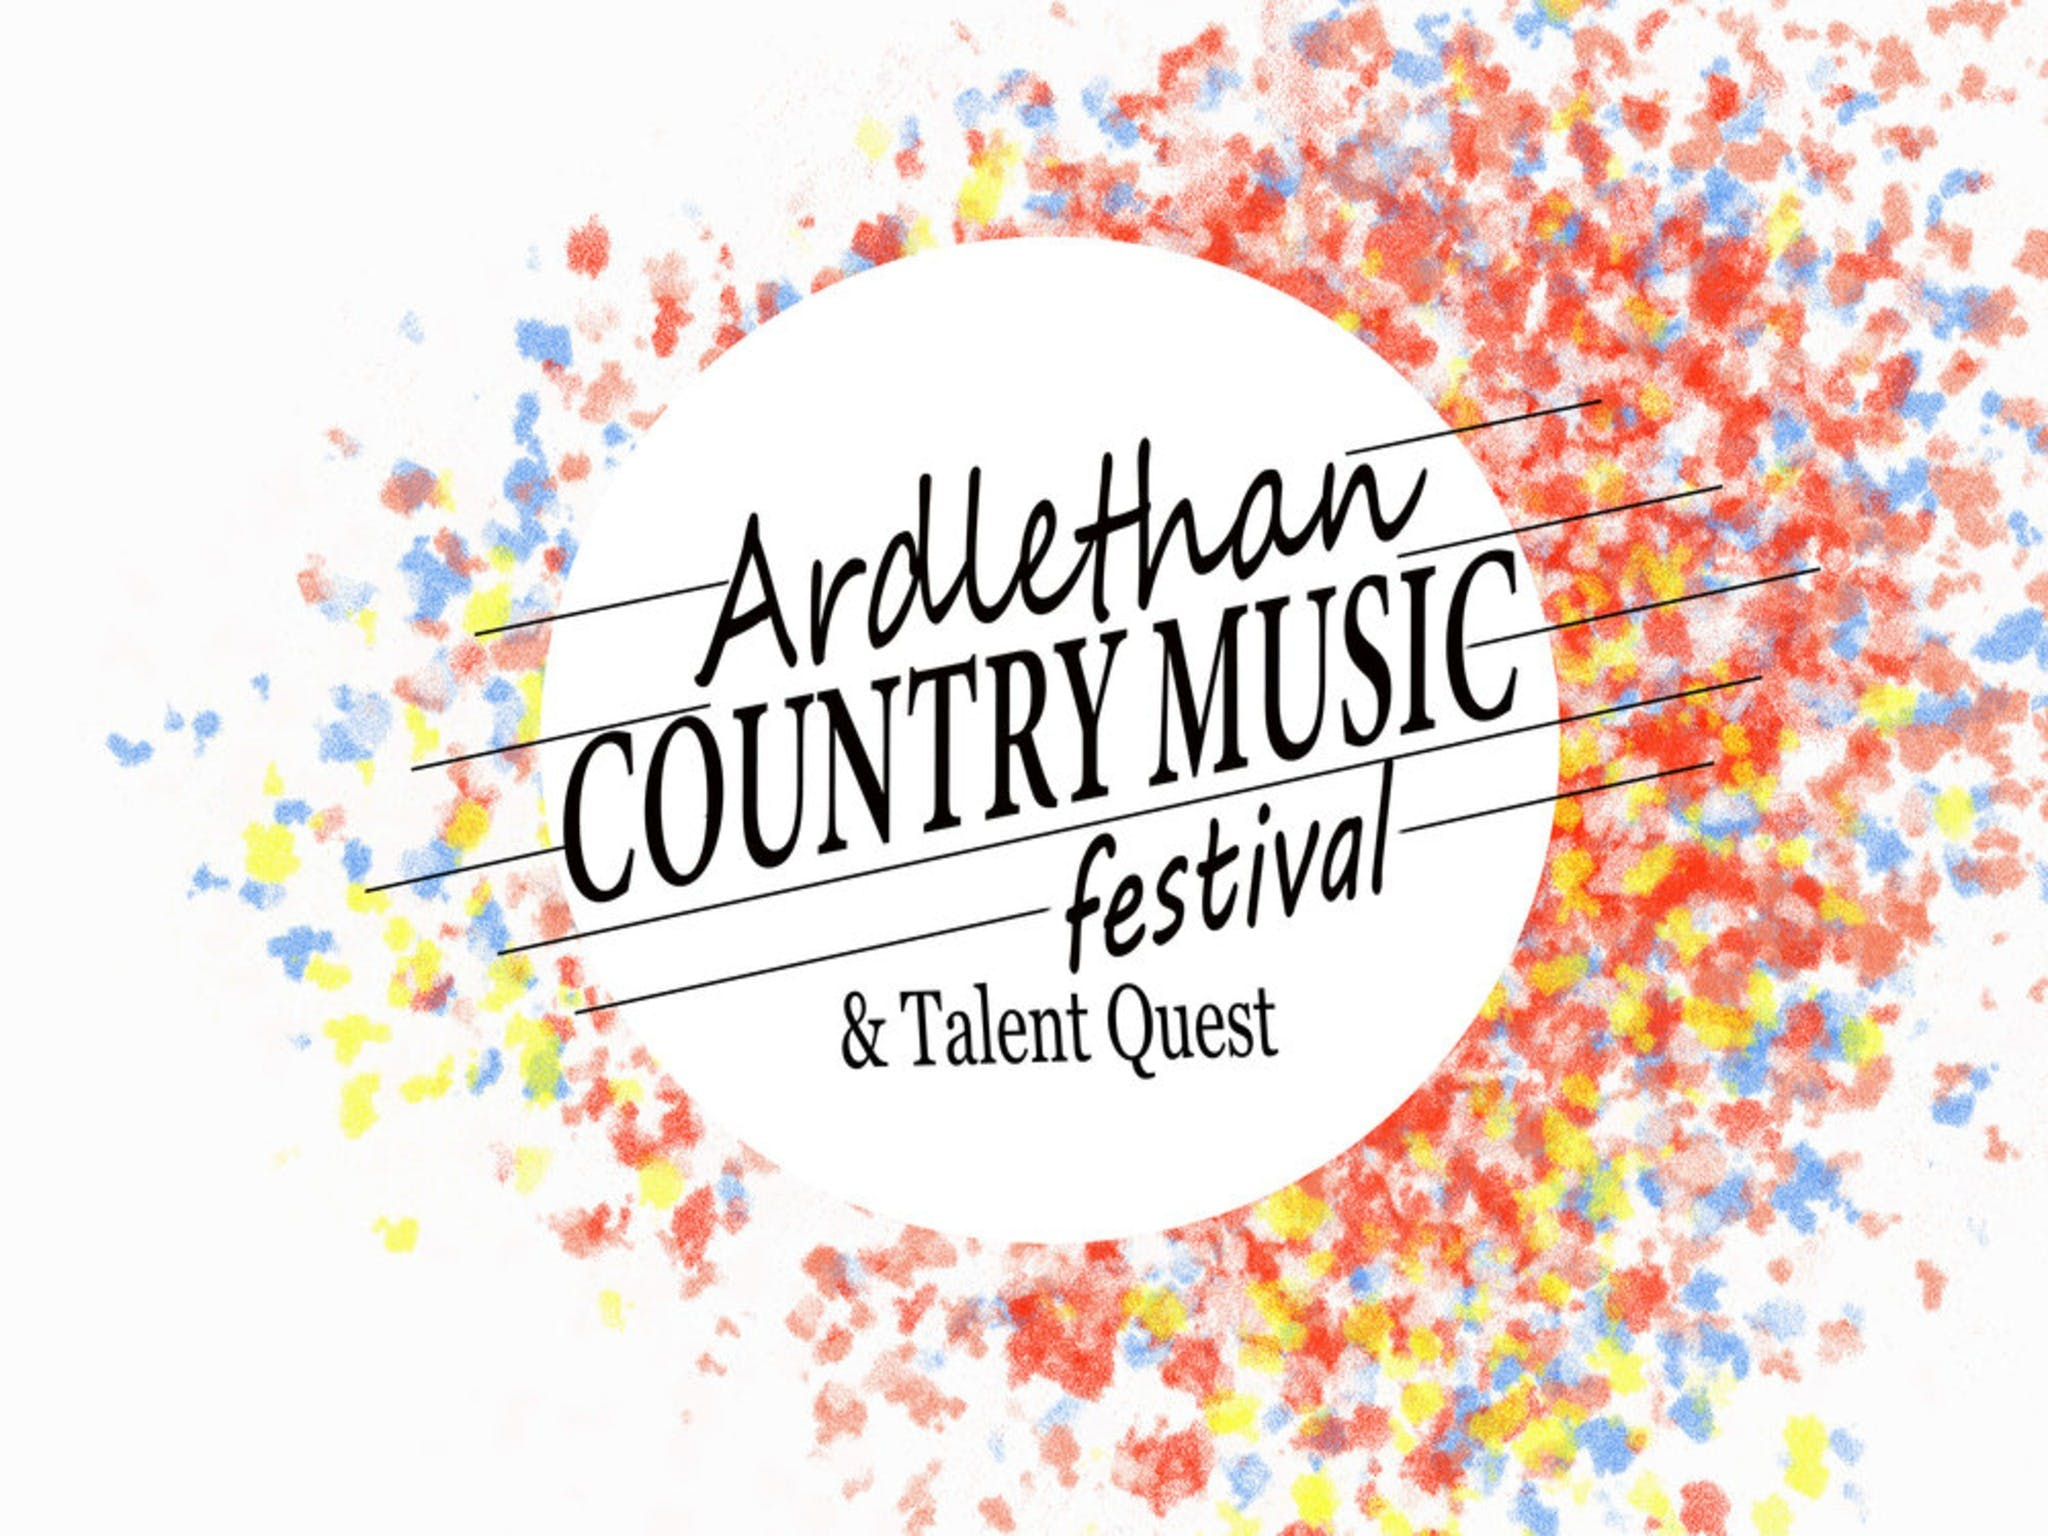 Ardlethan Country Music Festival - Tourism Brisbane